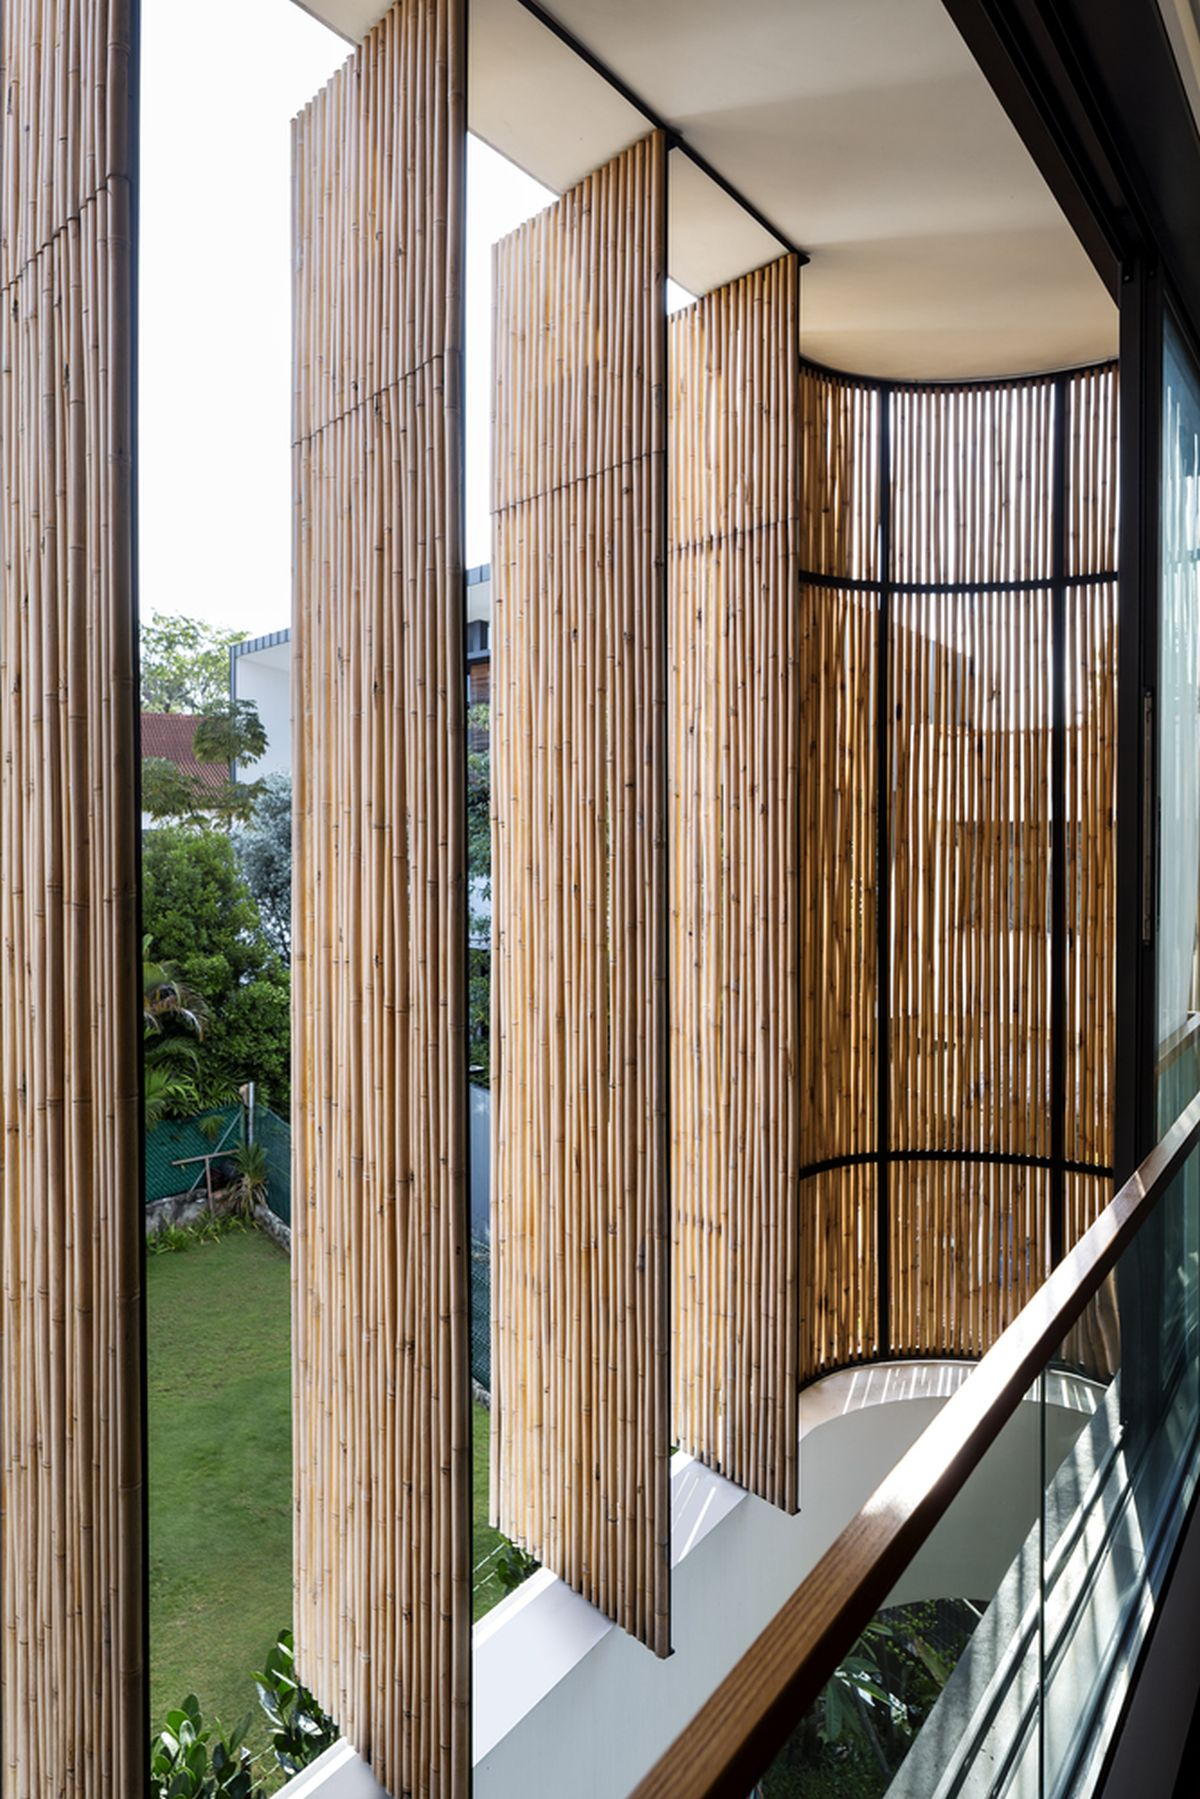 The facade has curved edges which are emphasized even more by the bamboo veil